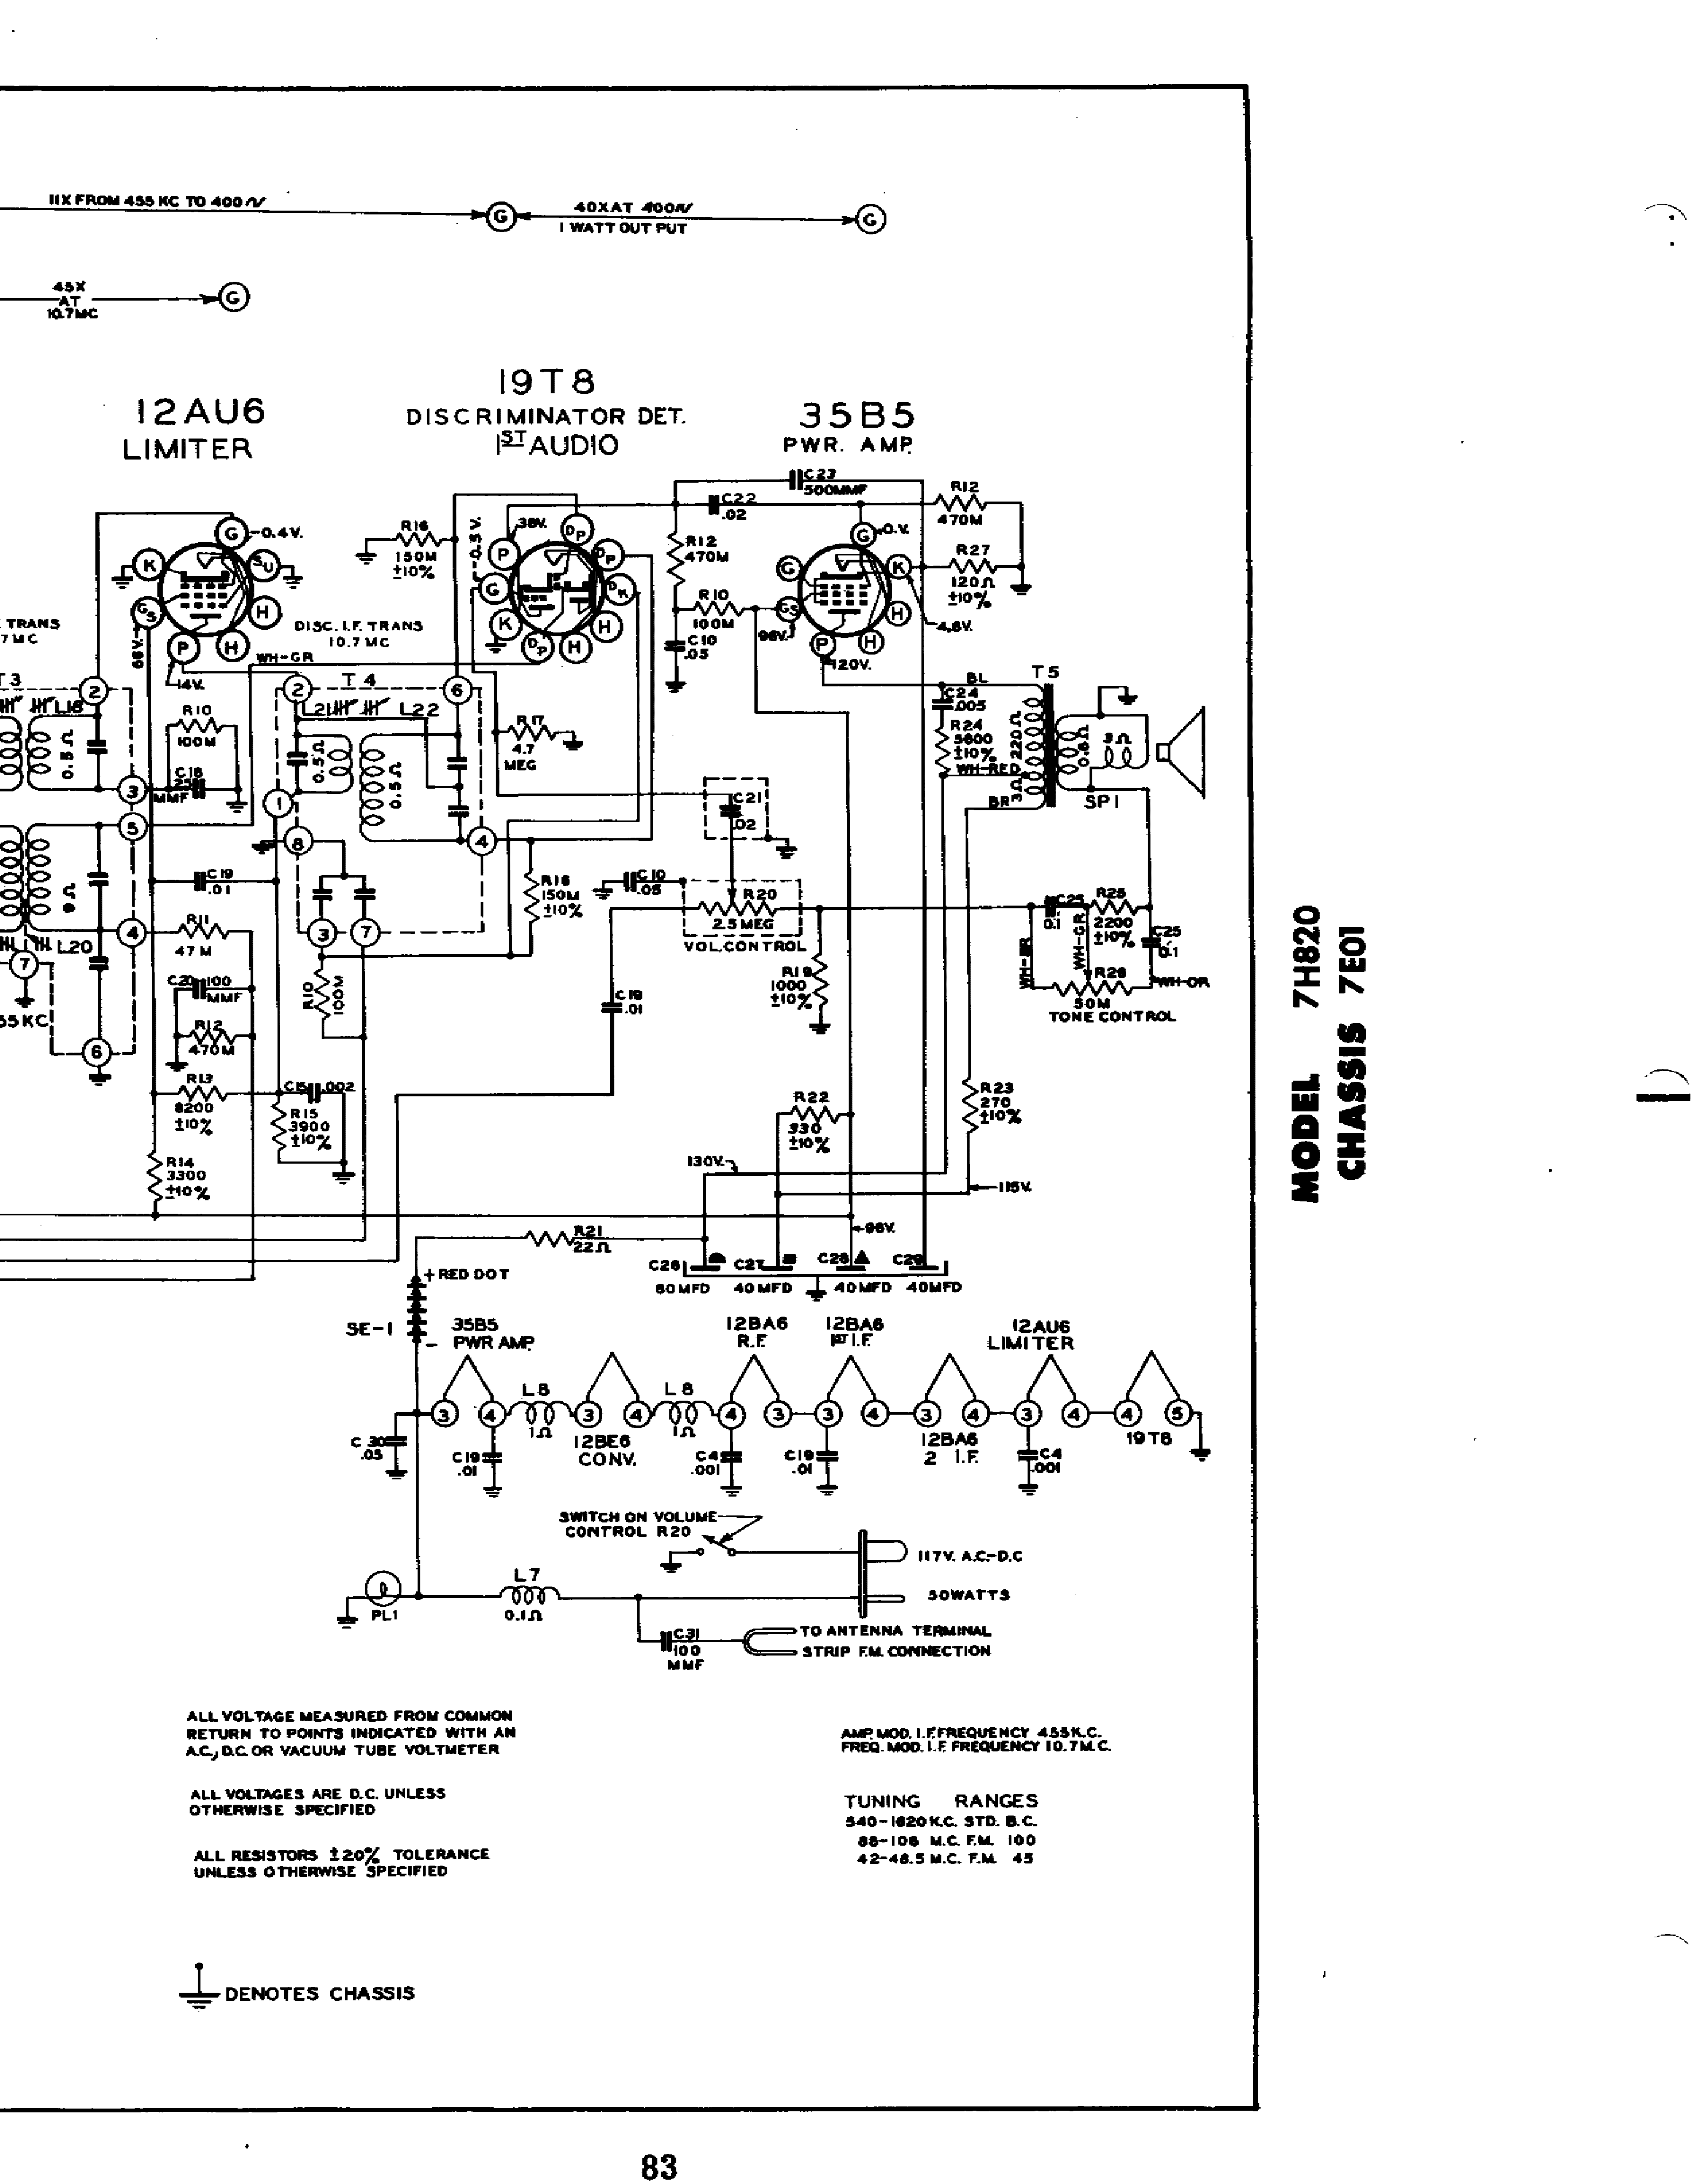 Zenith 7h820 Chassis 7e01 Radio Sm Service Manual Download